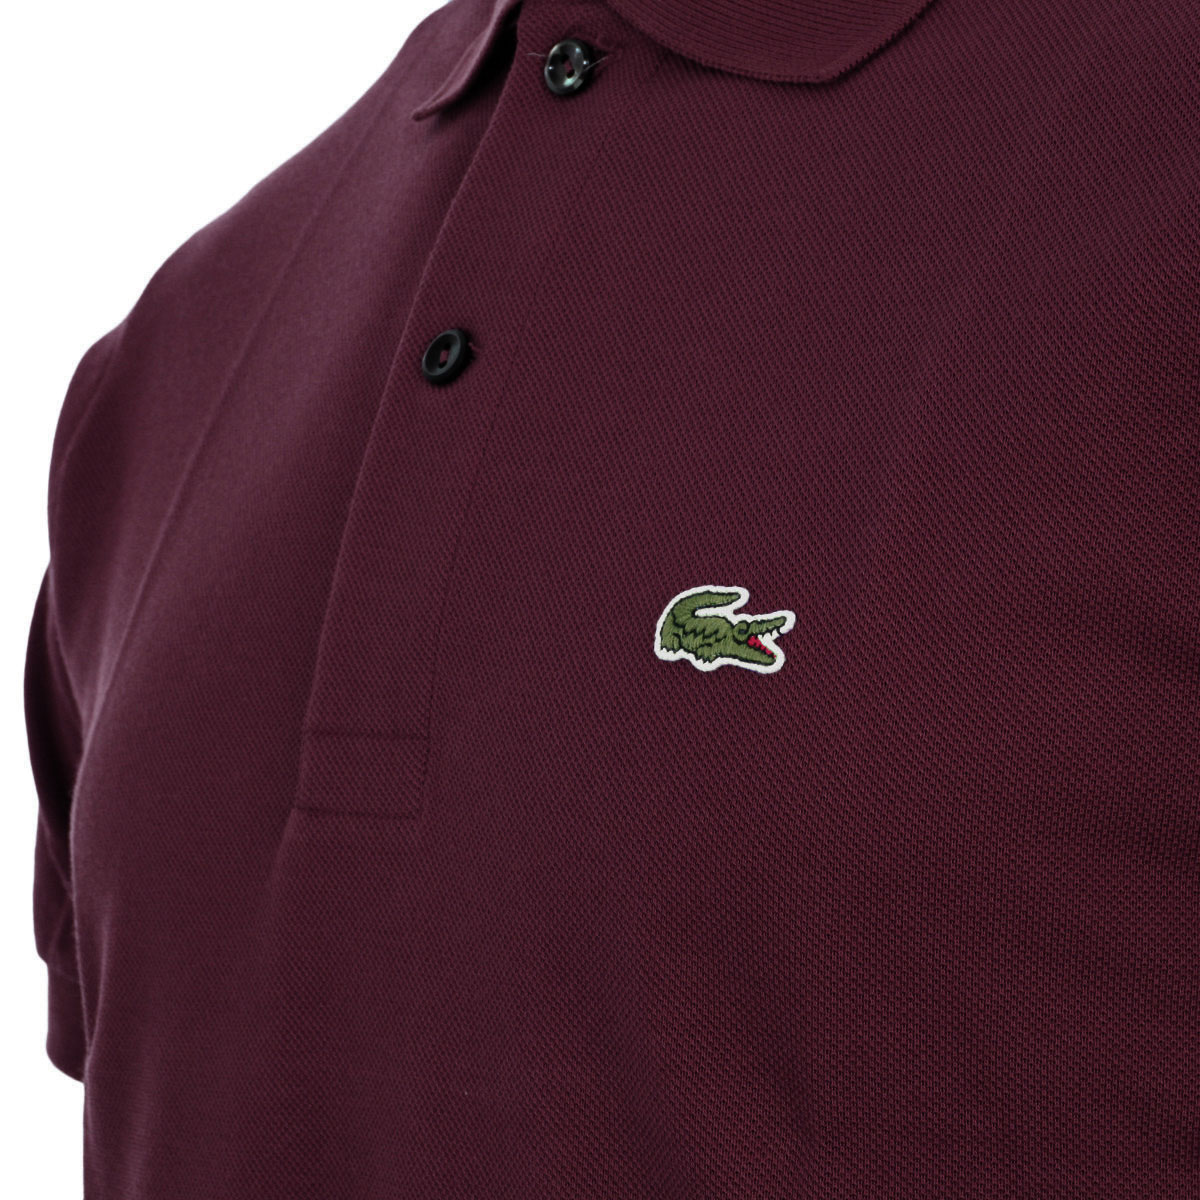 Lacoste-Mens-Classic-Cotton-L1212-Short-Sleeve-Polo-Shirt-26-OFF-RRP thumbnail 34